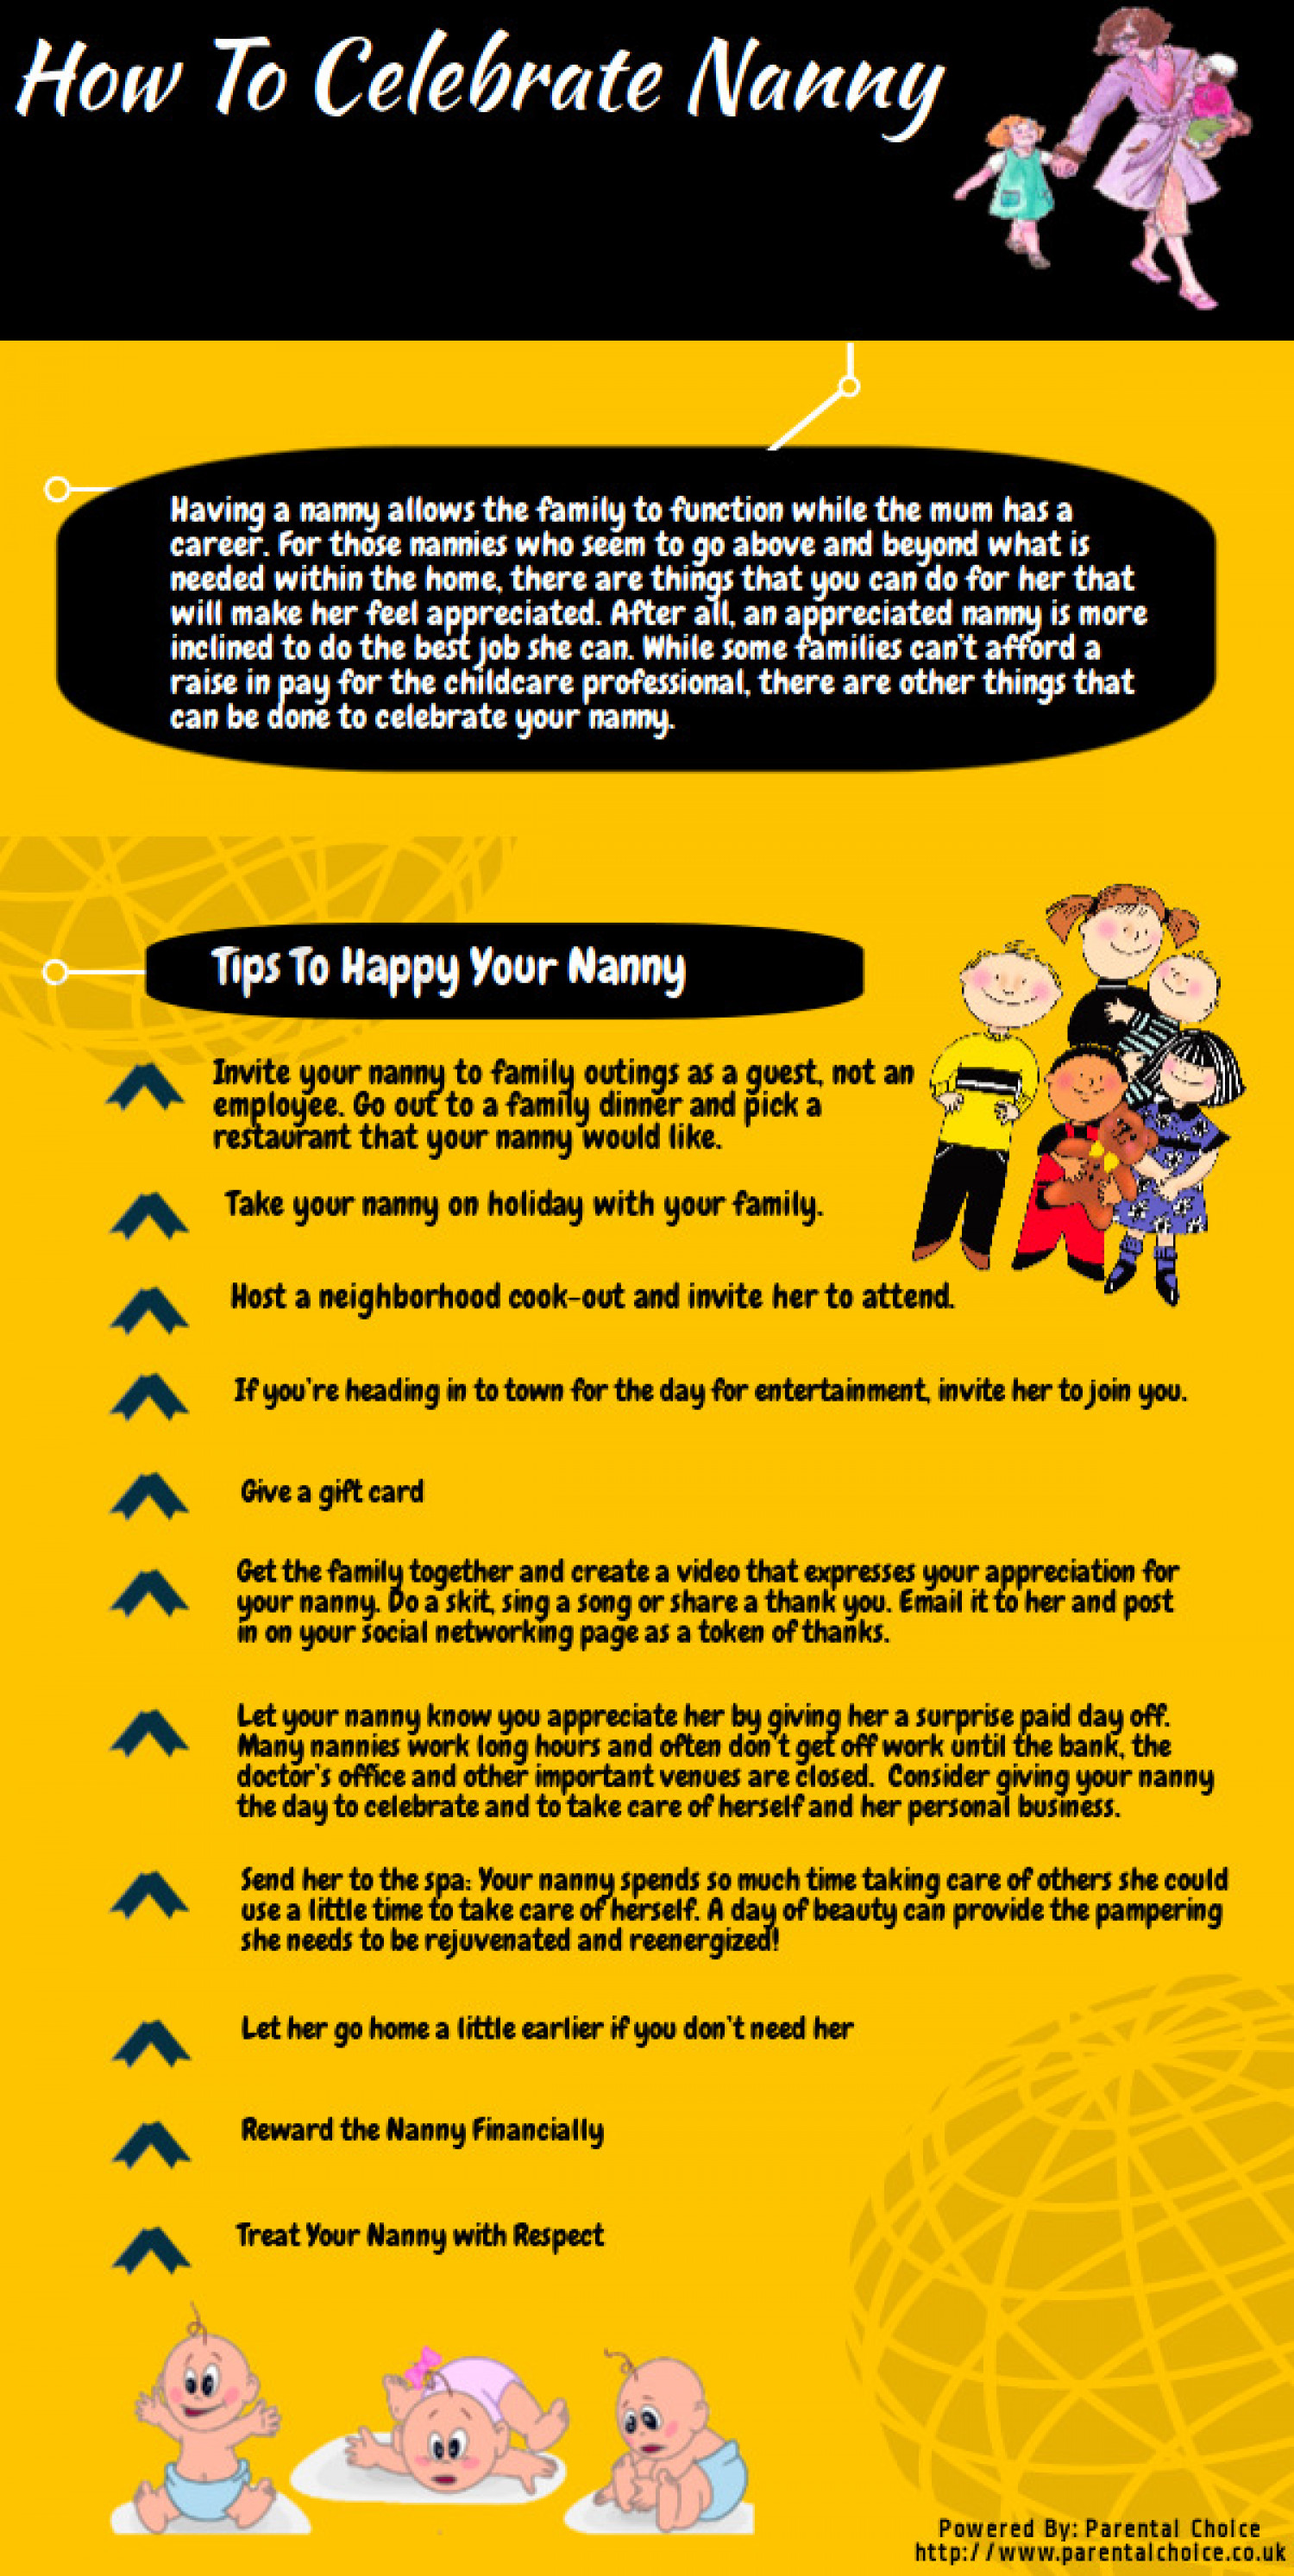 How To Celebrate Nanny Infographic